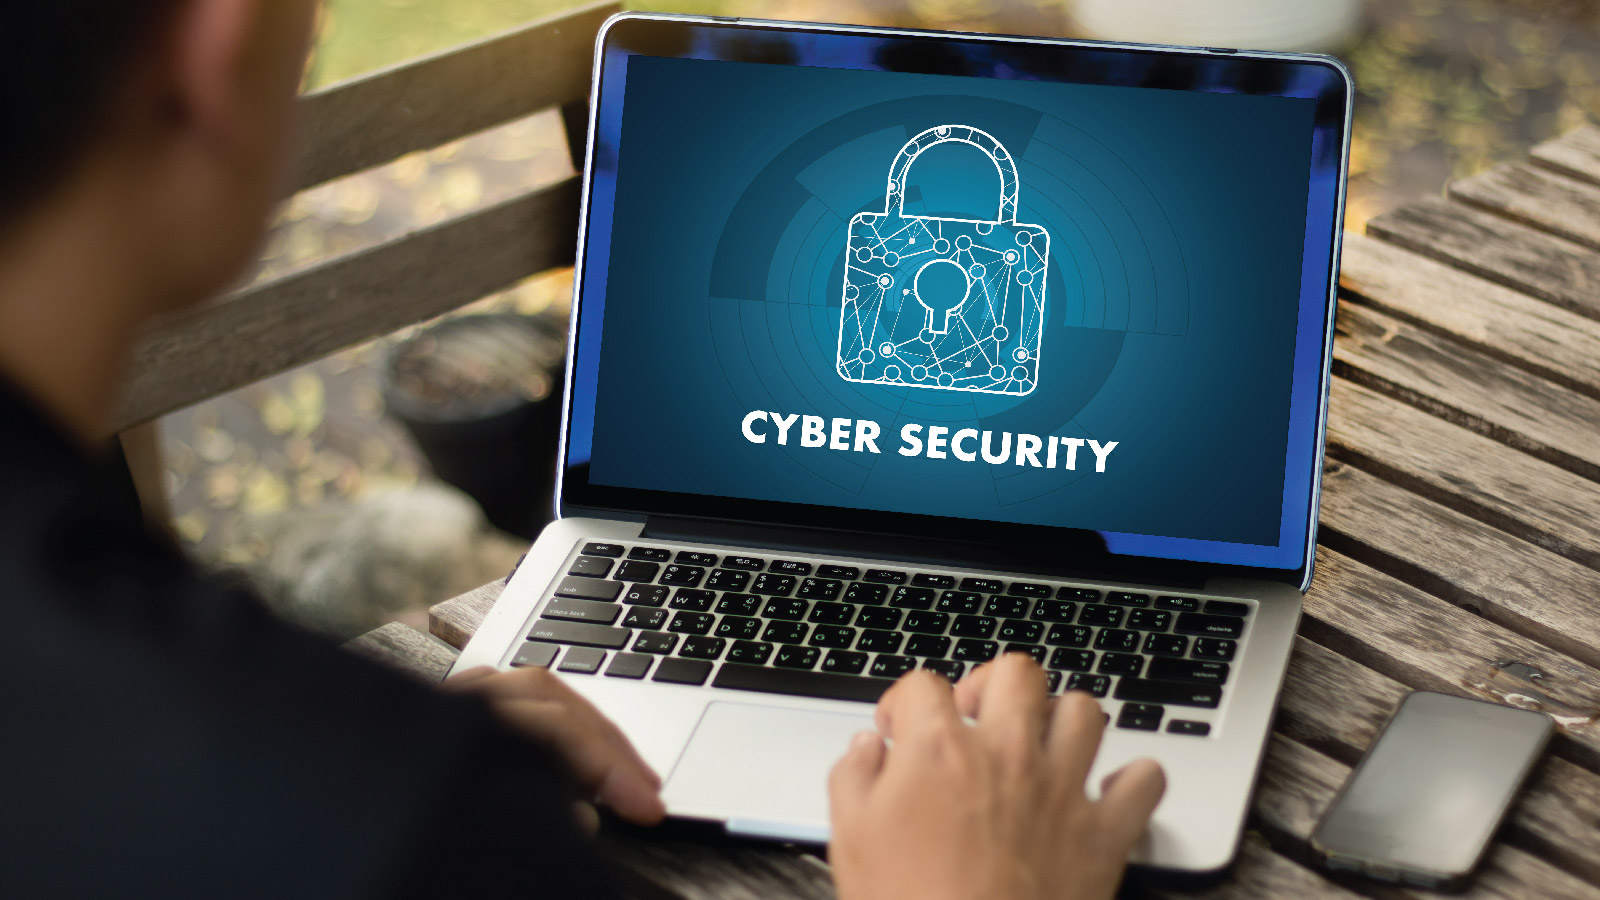 cyber security, 2020, predictions, cyber-attacks, hackers, automation, ransomware, solutions, collaborative tools, enterprise, data-driven,